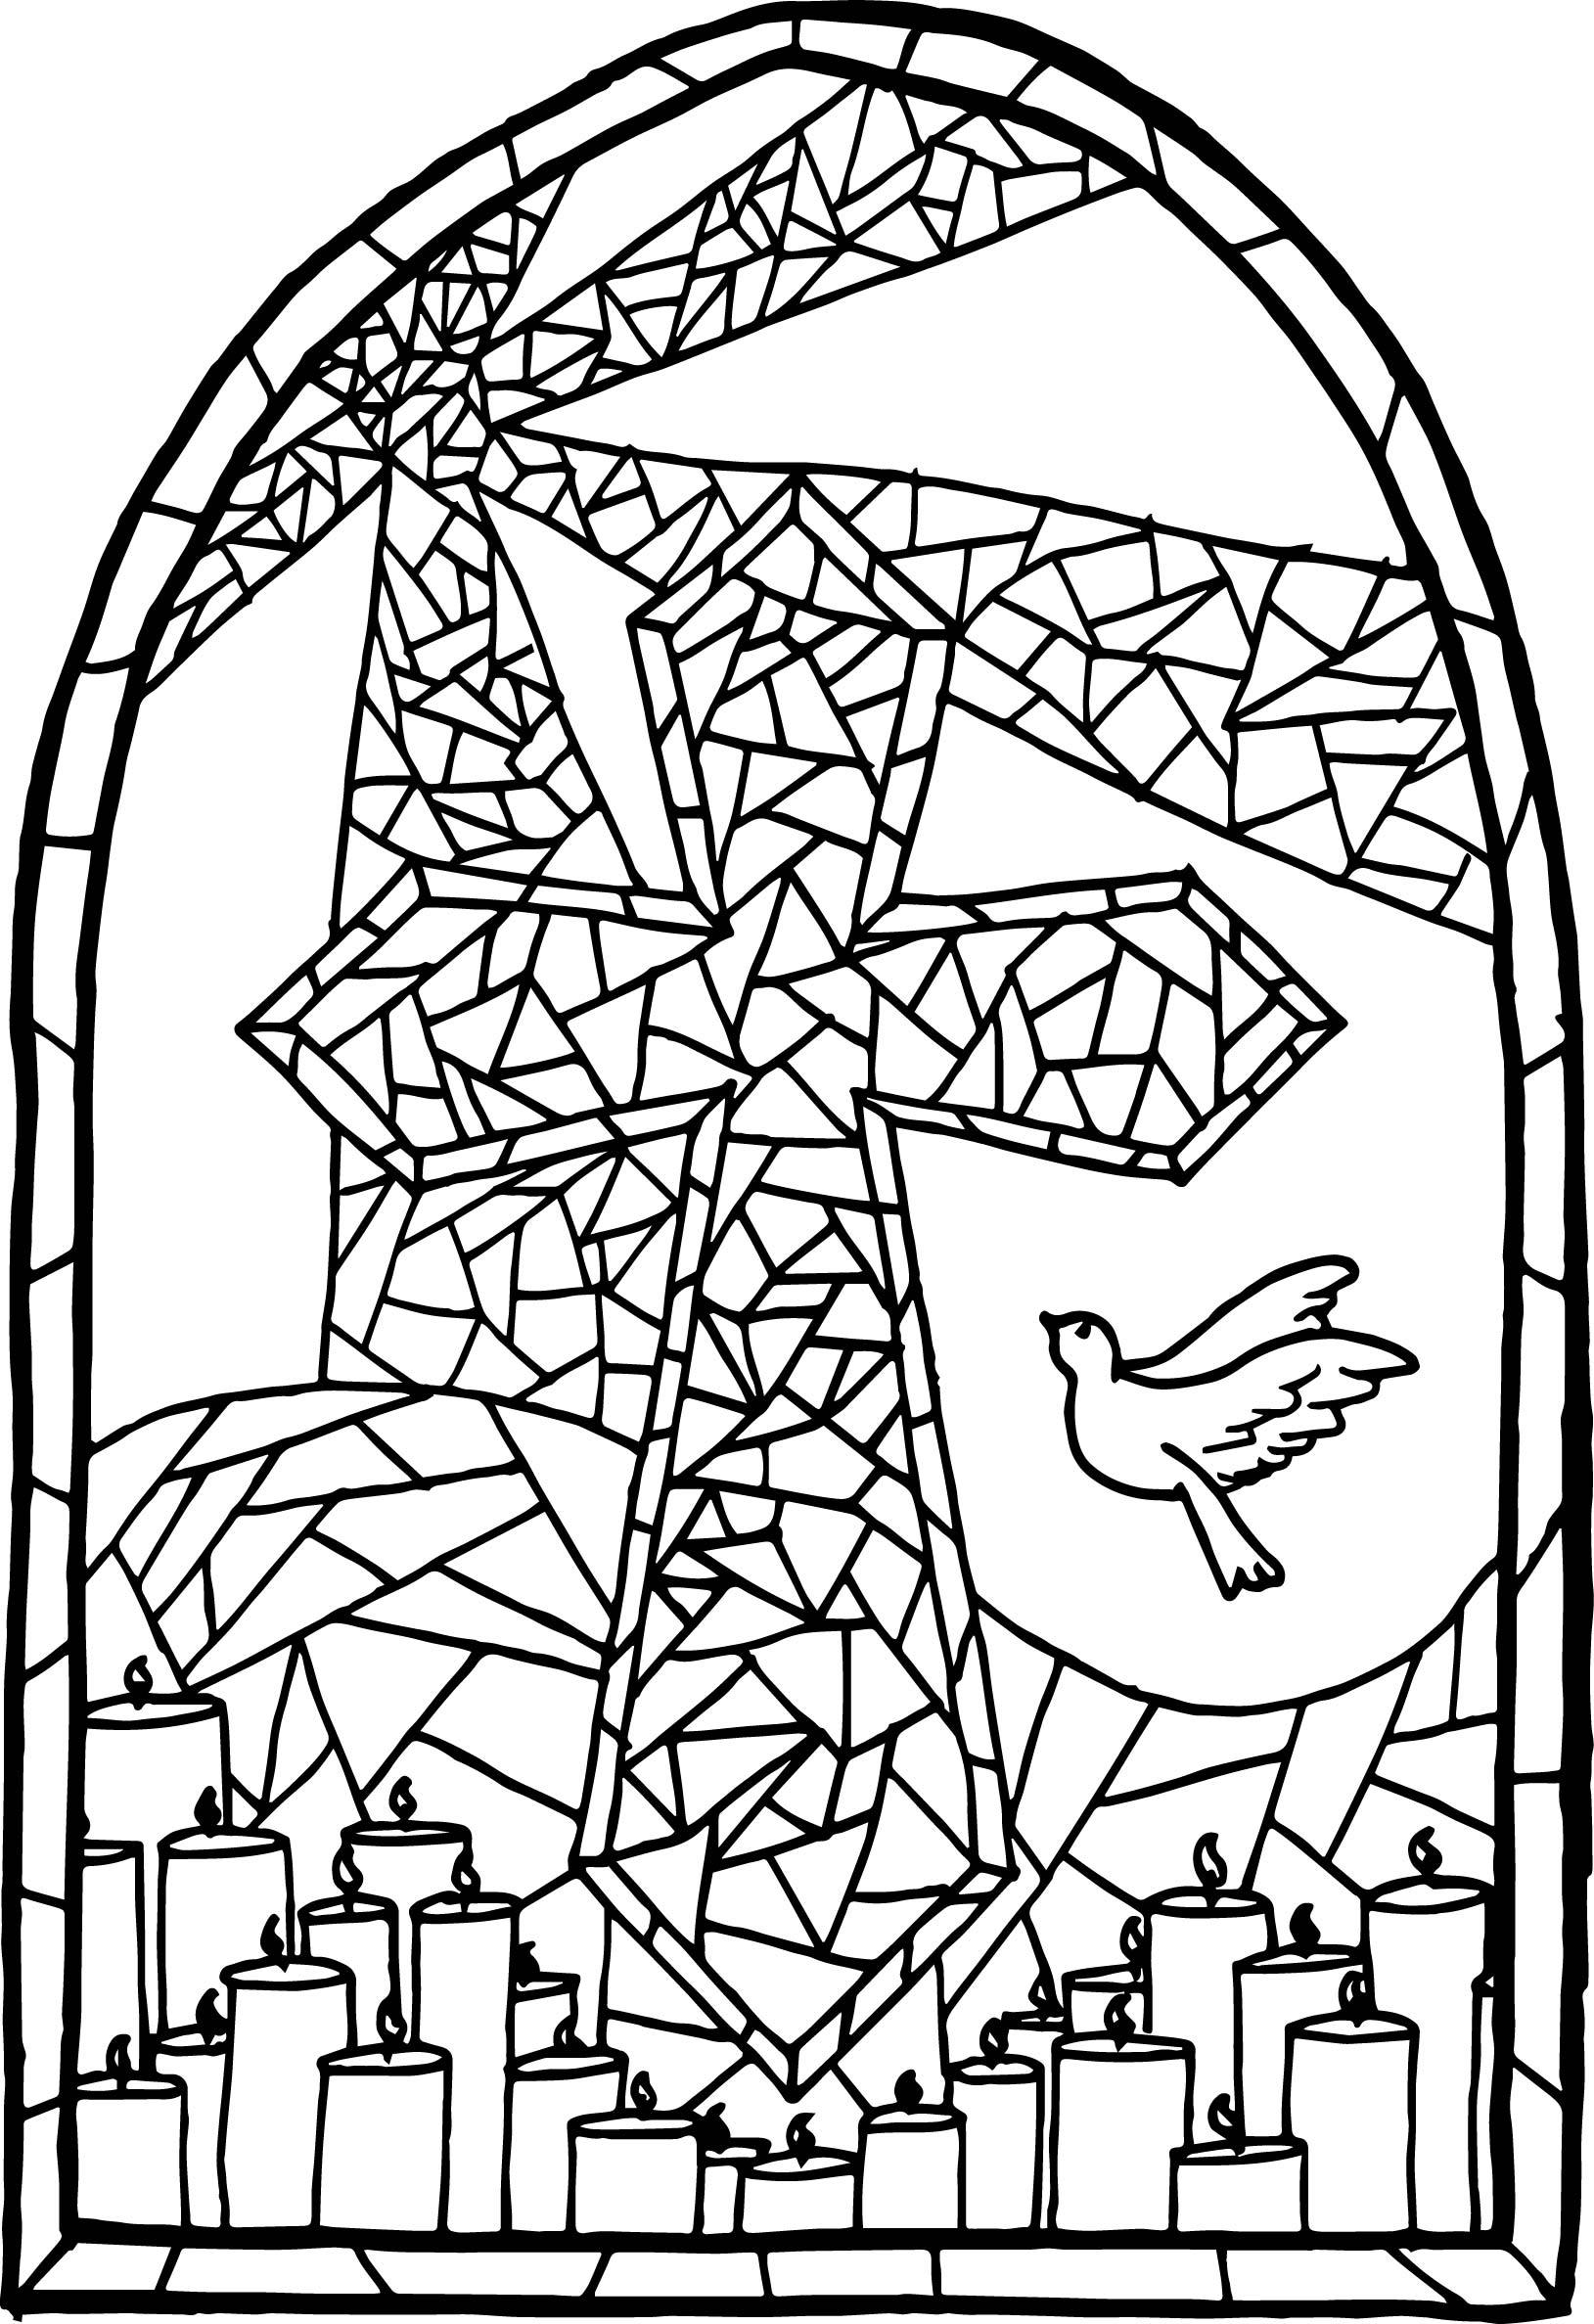 stained glass window coloring pages expose homelessness fancy stained glass window butterfly coloring window glass pages stained